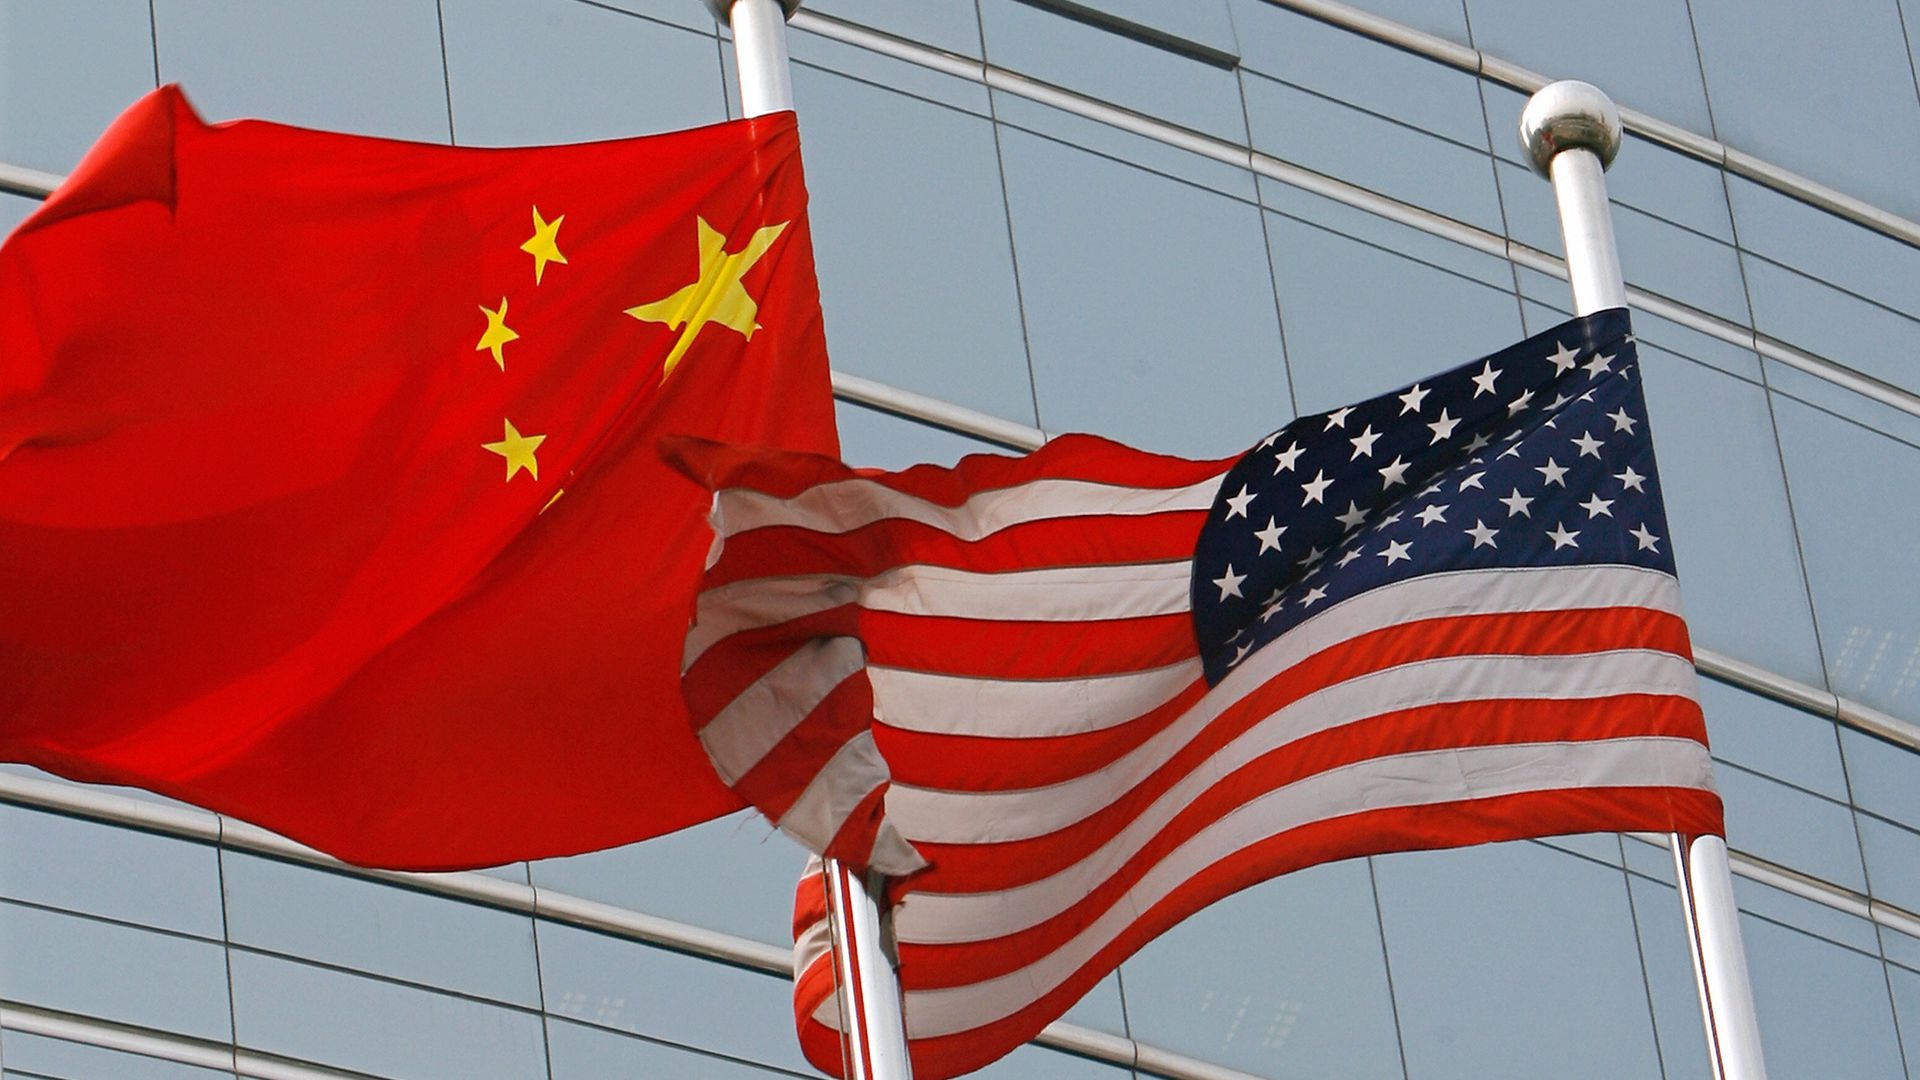 A US and a Chinese flag wave side by side